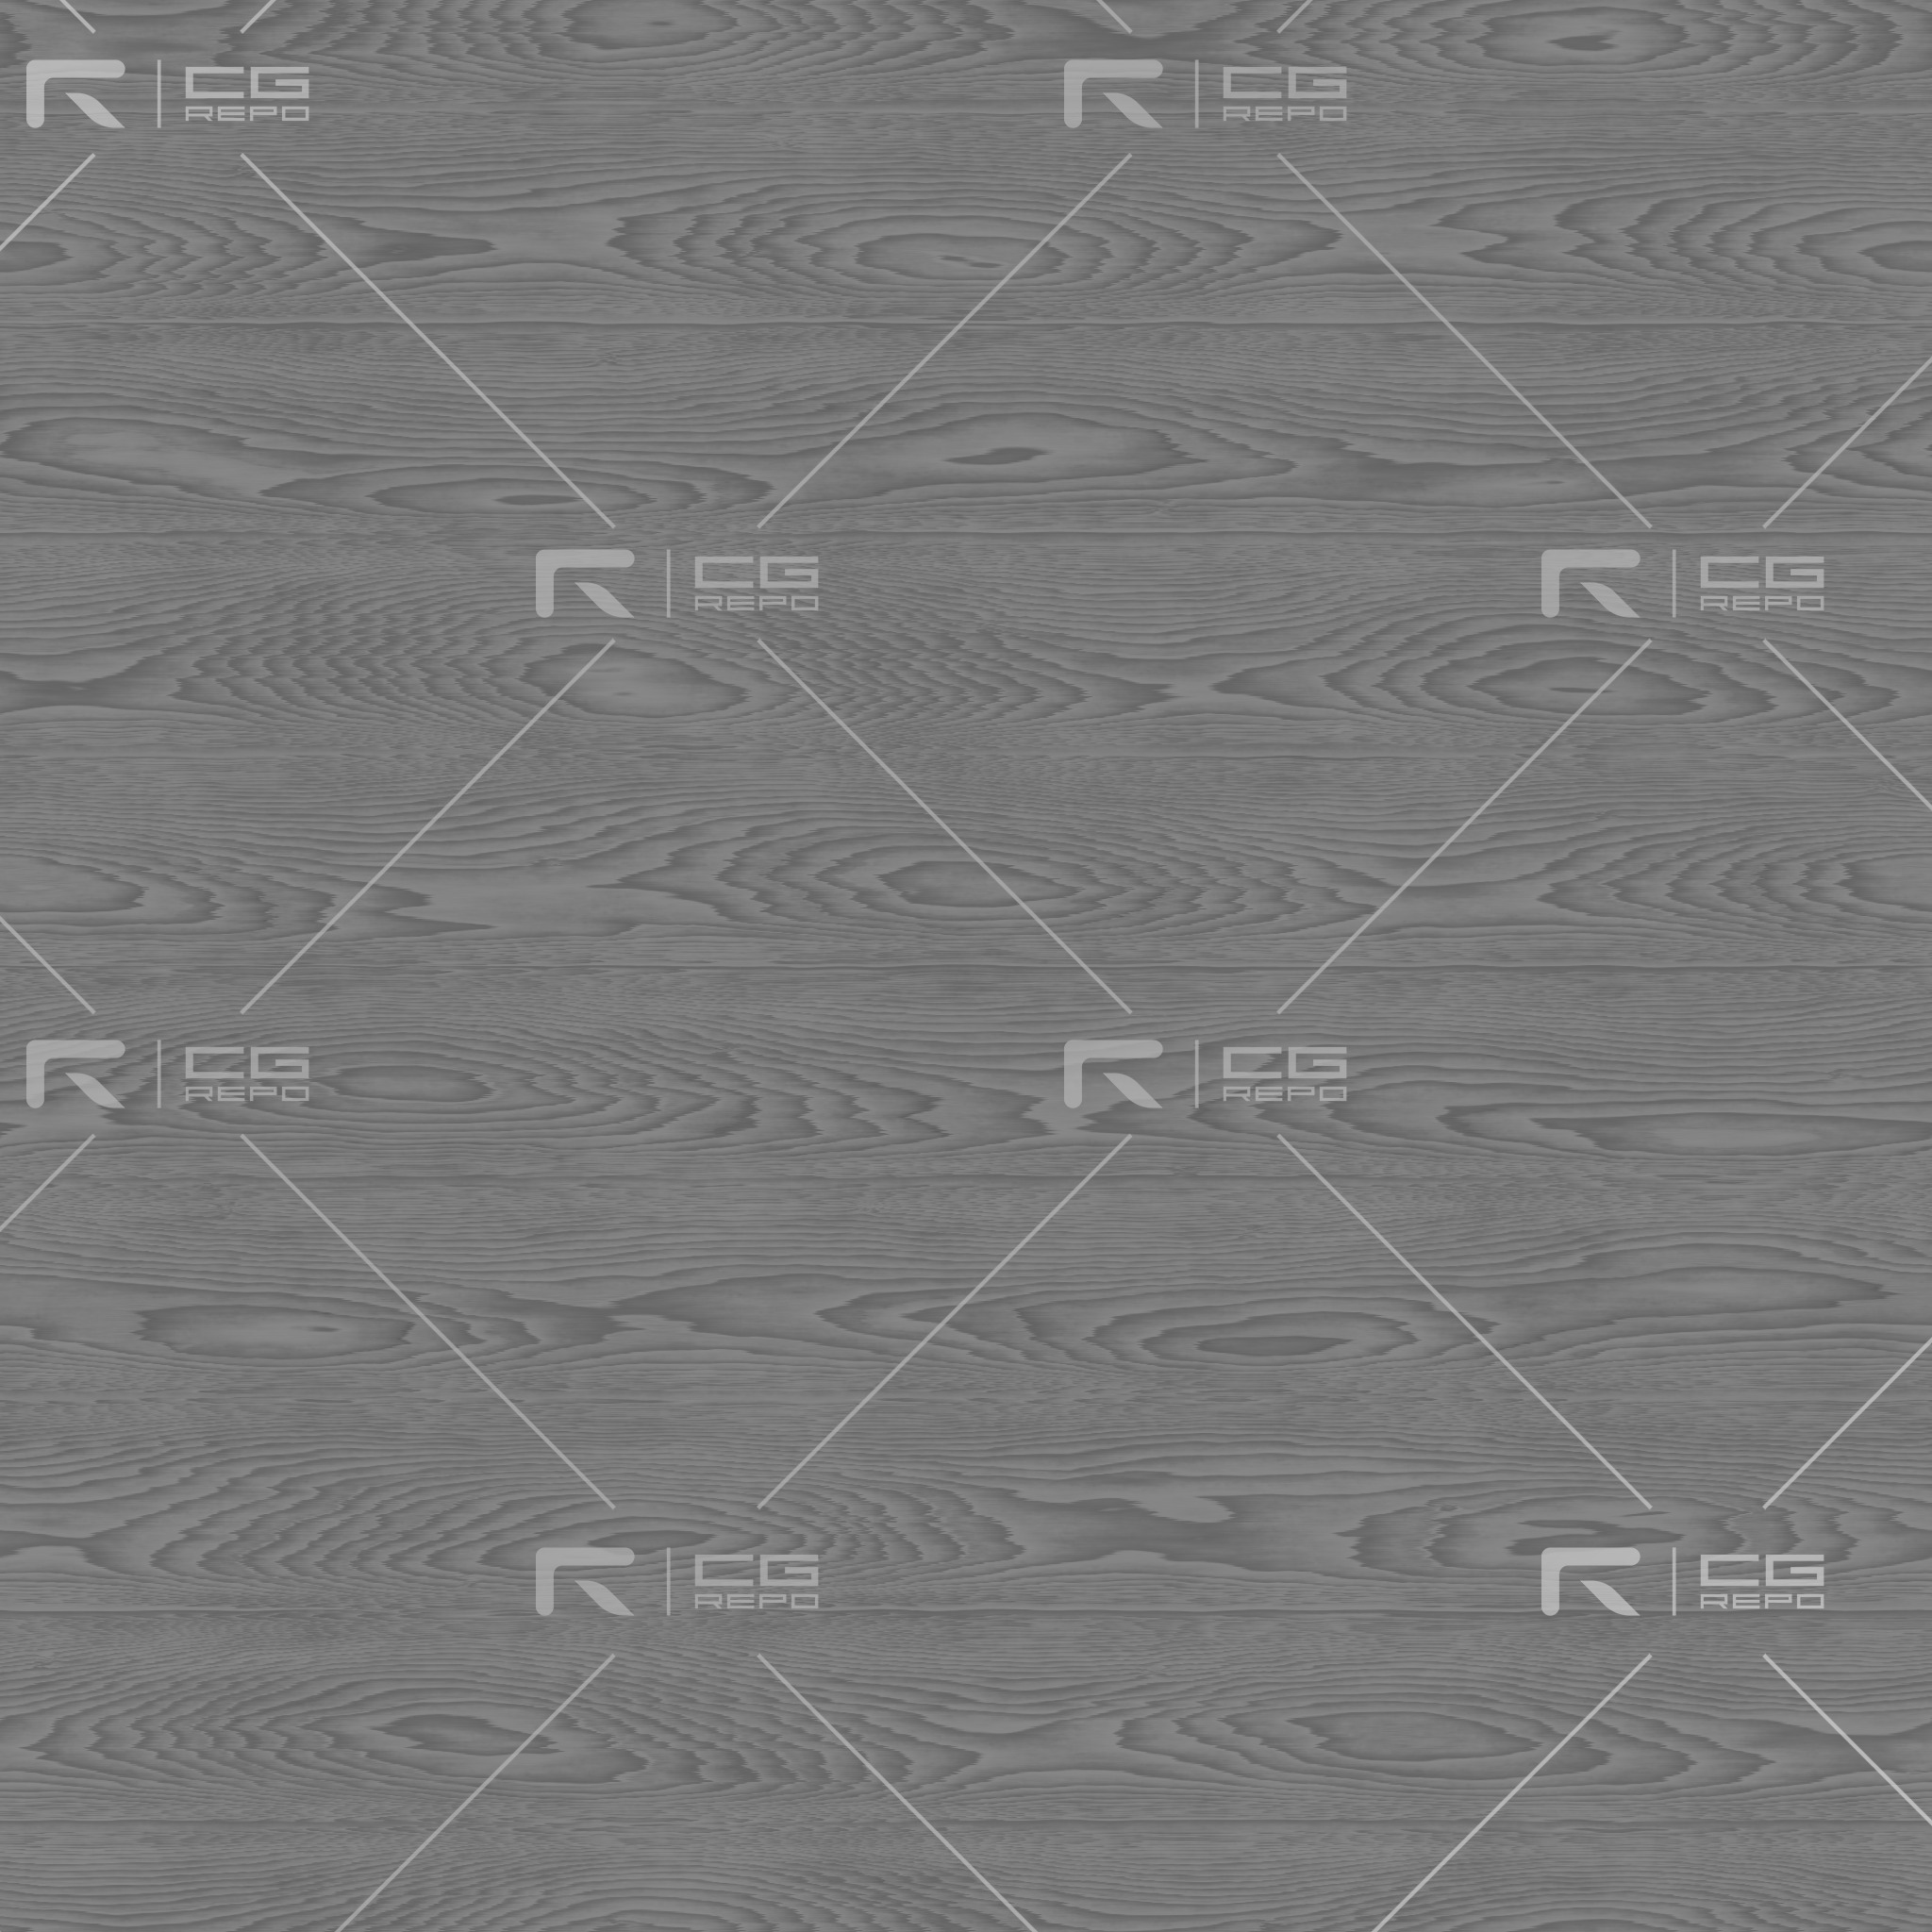 Oak - Painted Grunge Grey - Cathedral Shape Roughness Texture